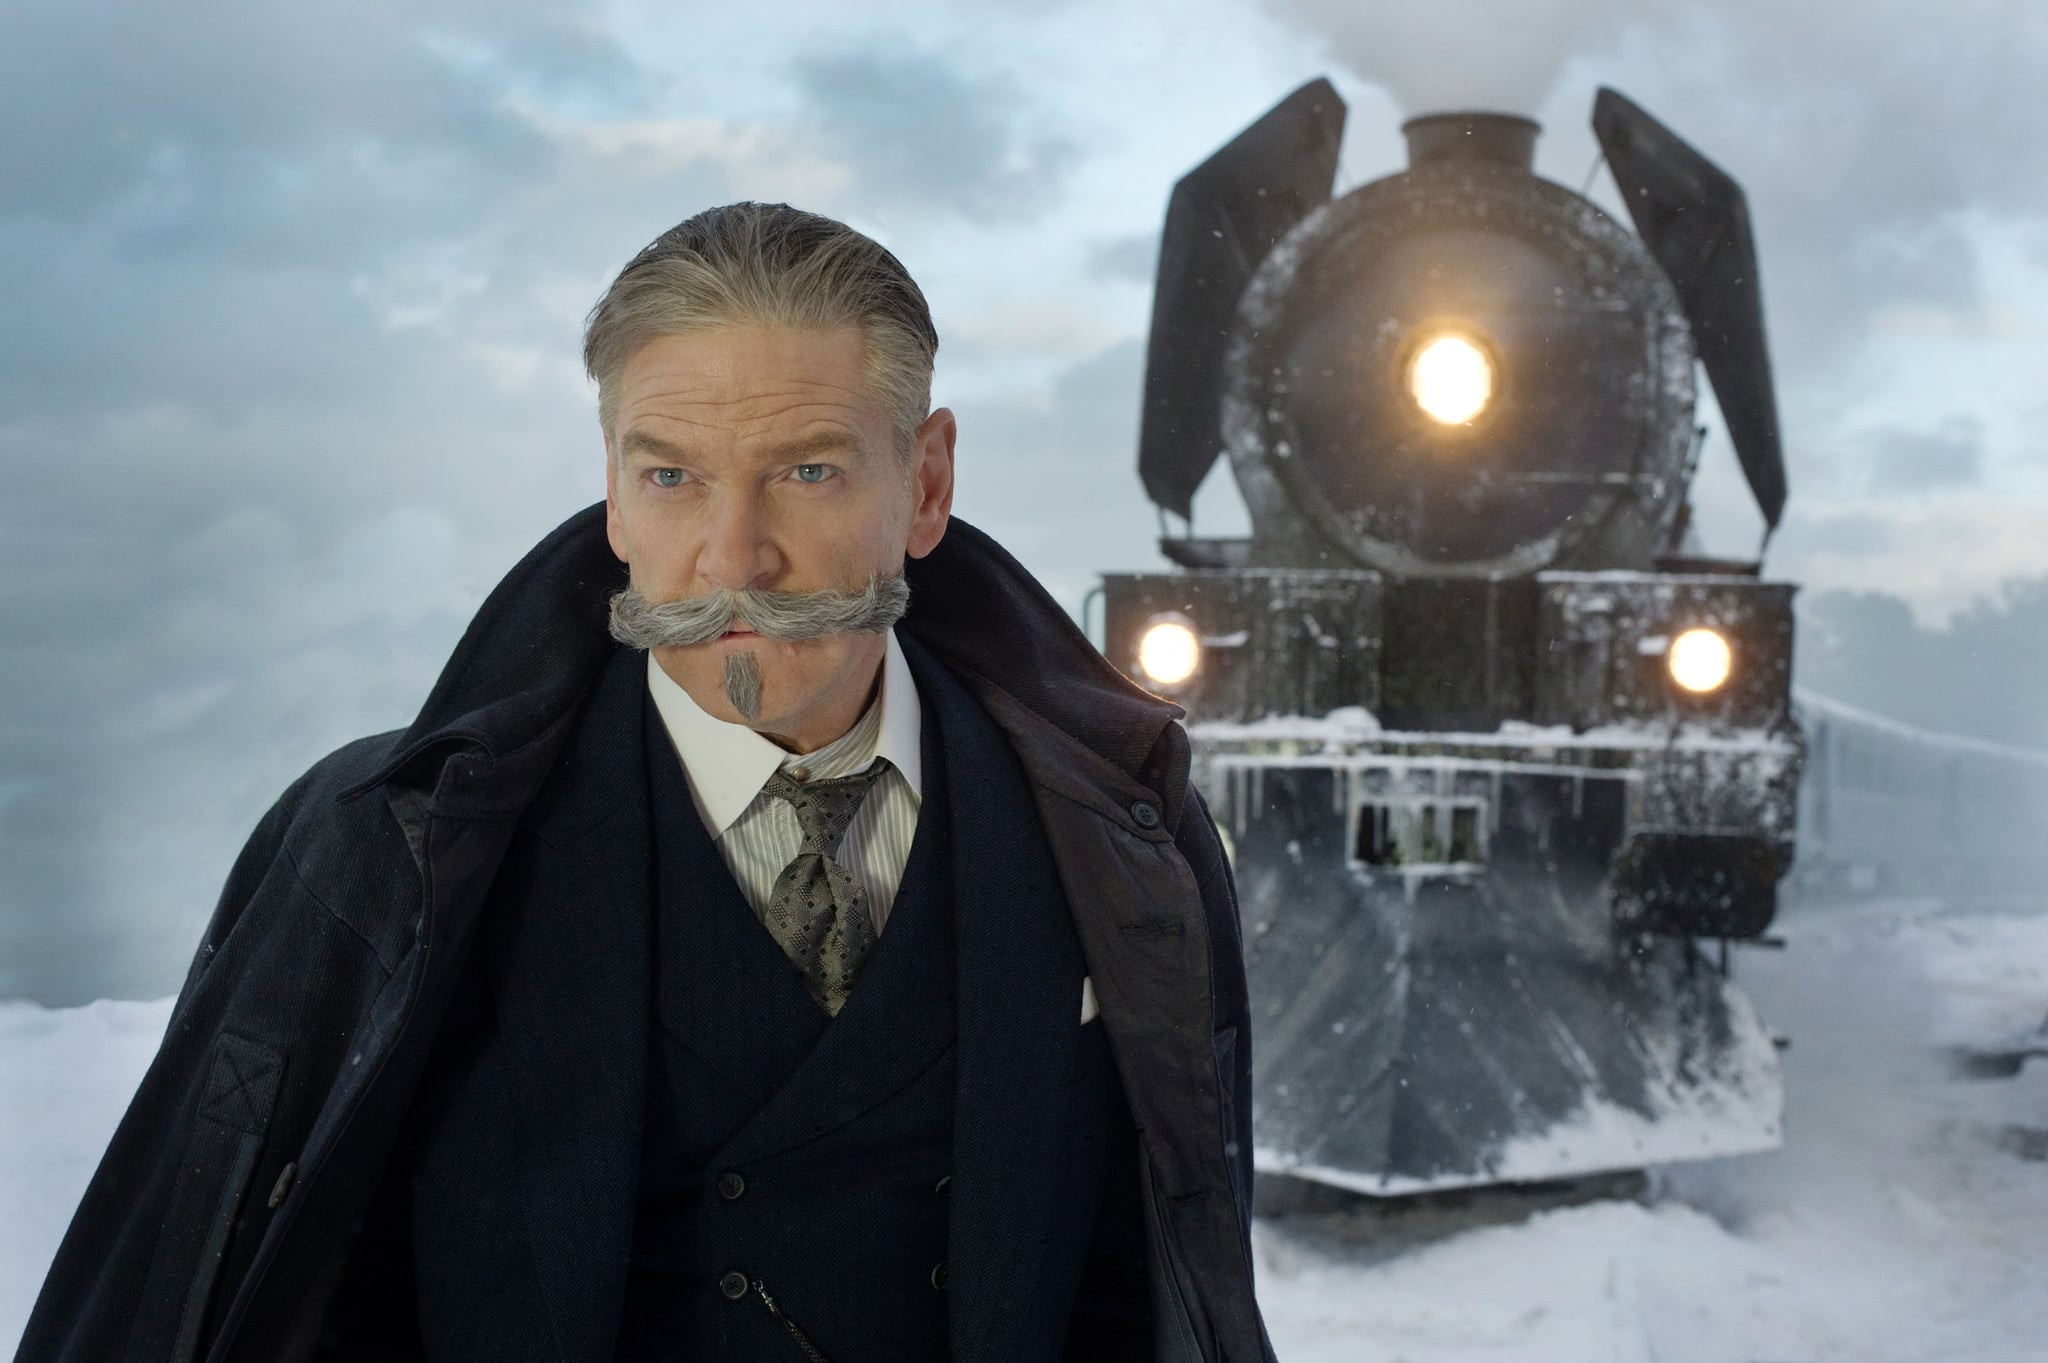 'Murder on the Orient Express' Sequel in the Works